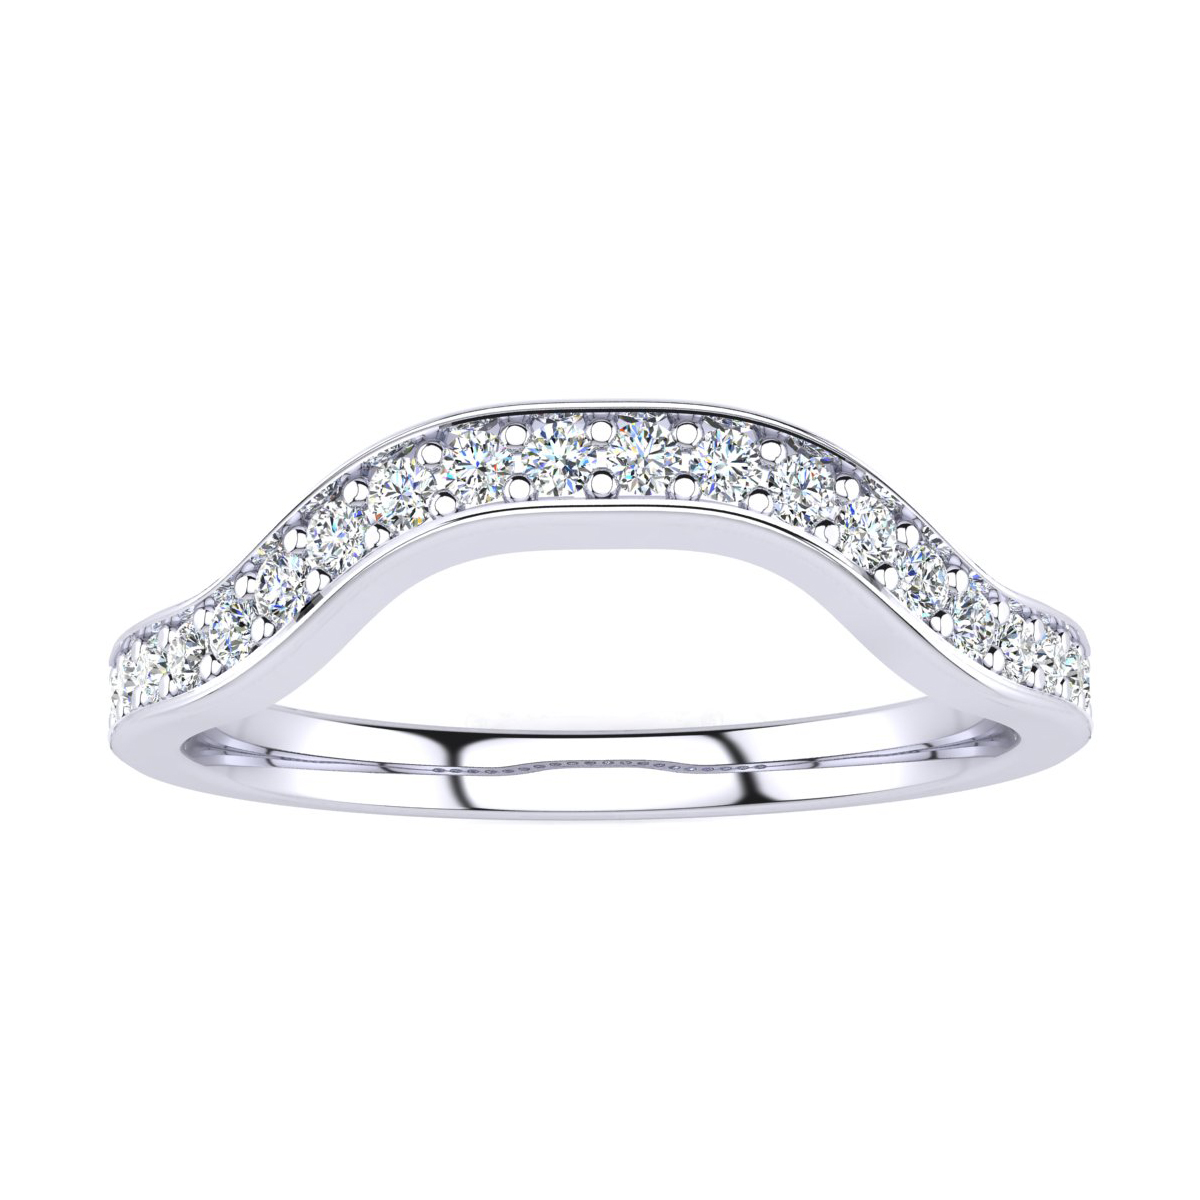 b60359055910ae 1/4ct Diamond mathing Wedding Band for Double Halo Massive Looking Princess  Cut Engagement Rings In 14K White Gold